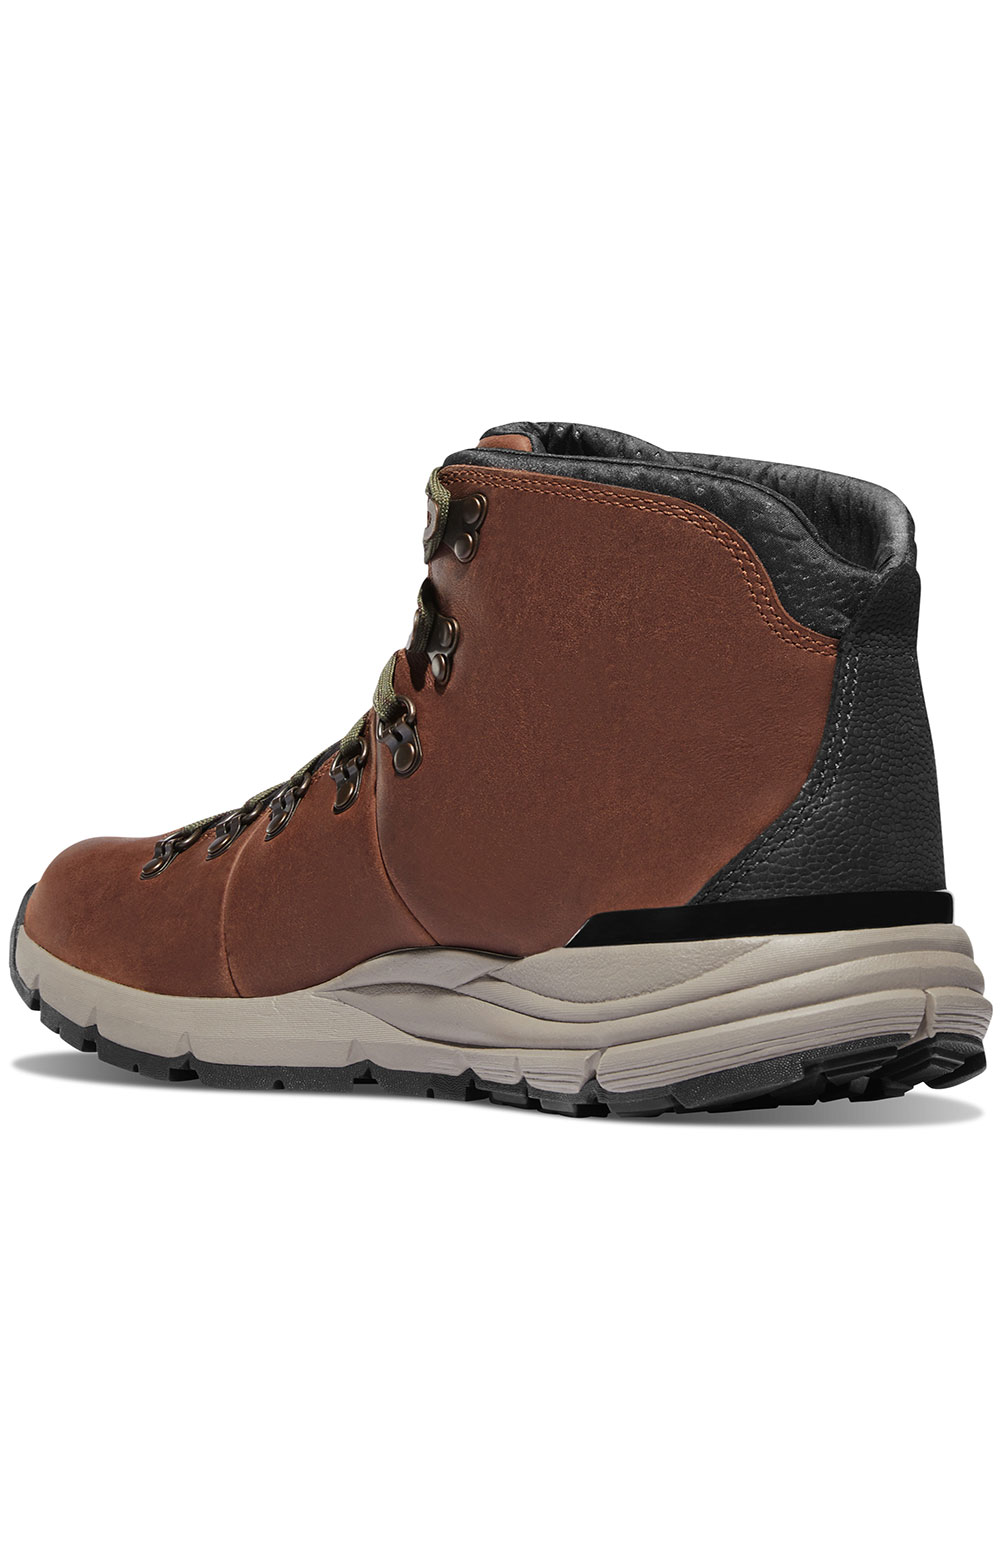 (62272) Mountain 600 Boots - Walmut/Green 2